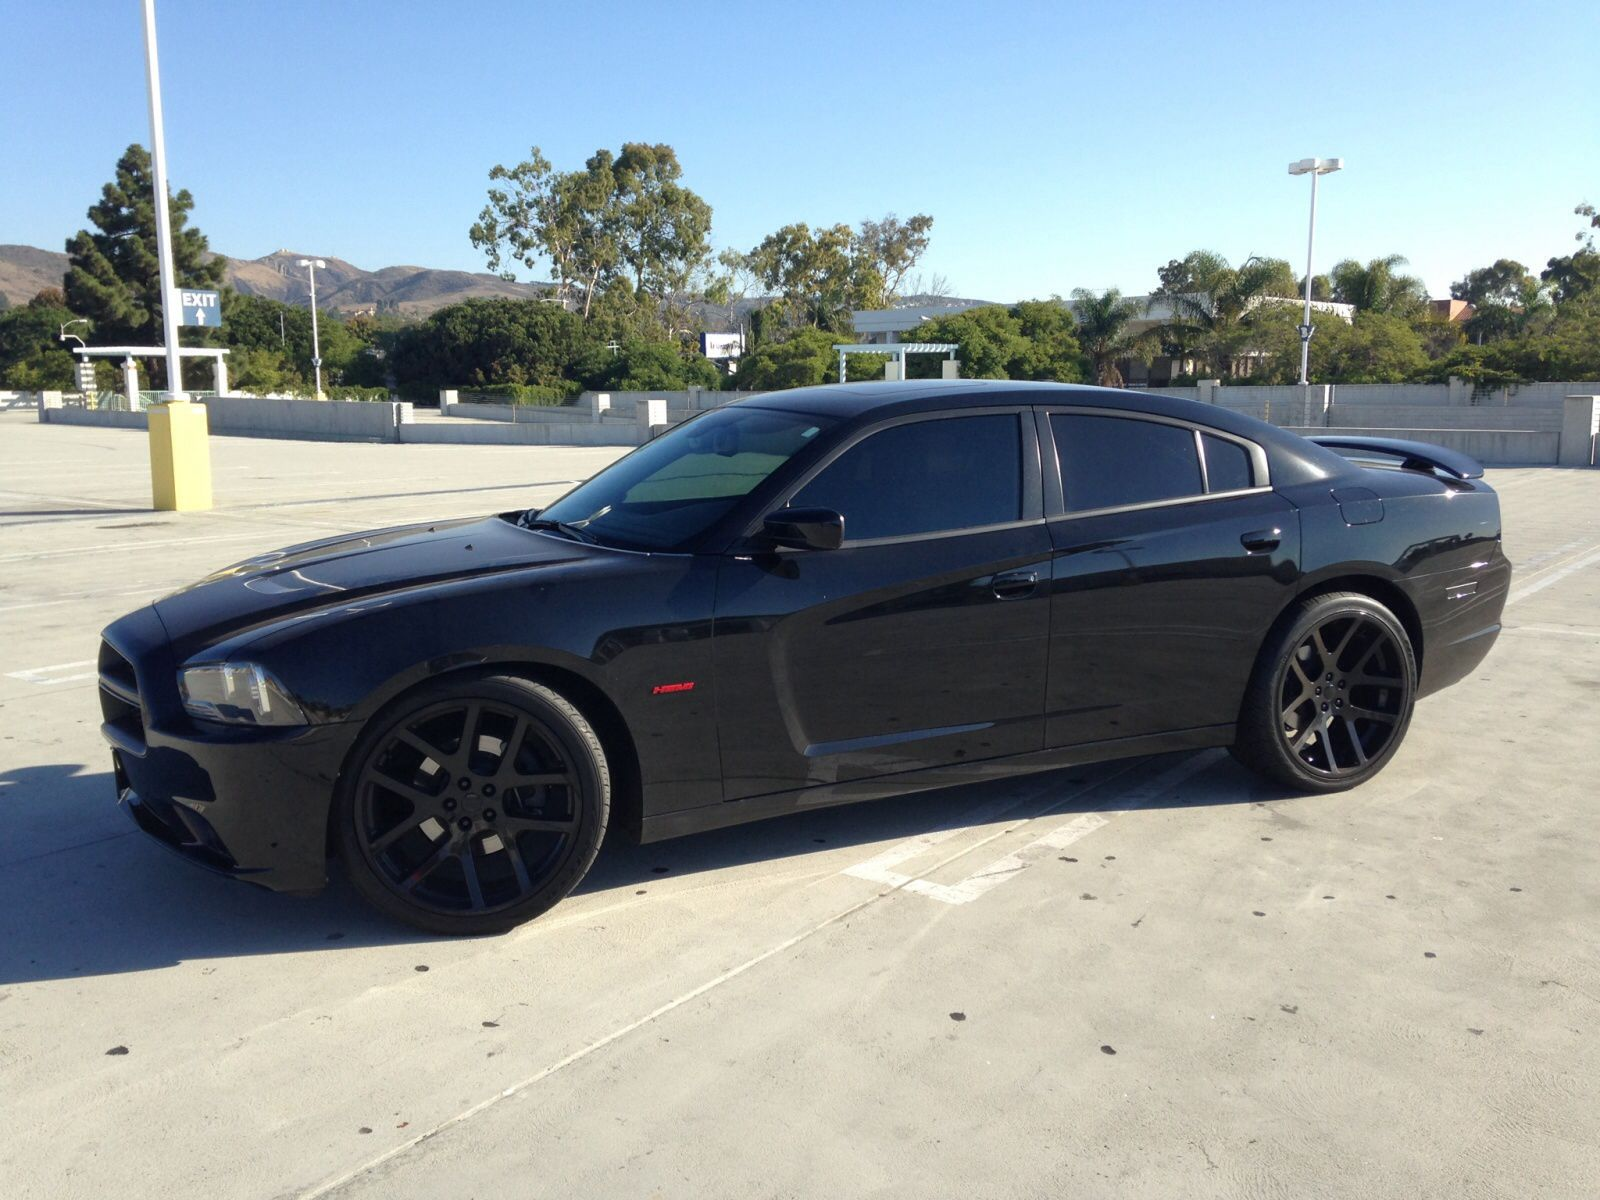 Blacked Out 2012 Dodge Charger Modern Muscle Cars Dodge Charger